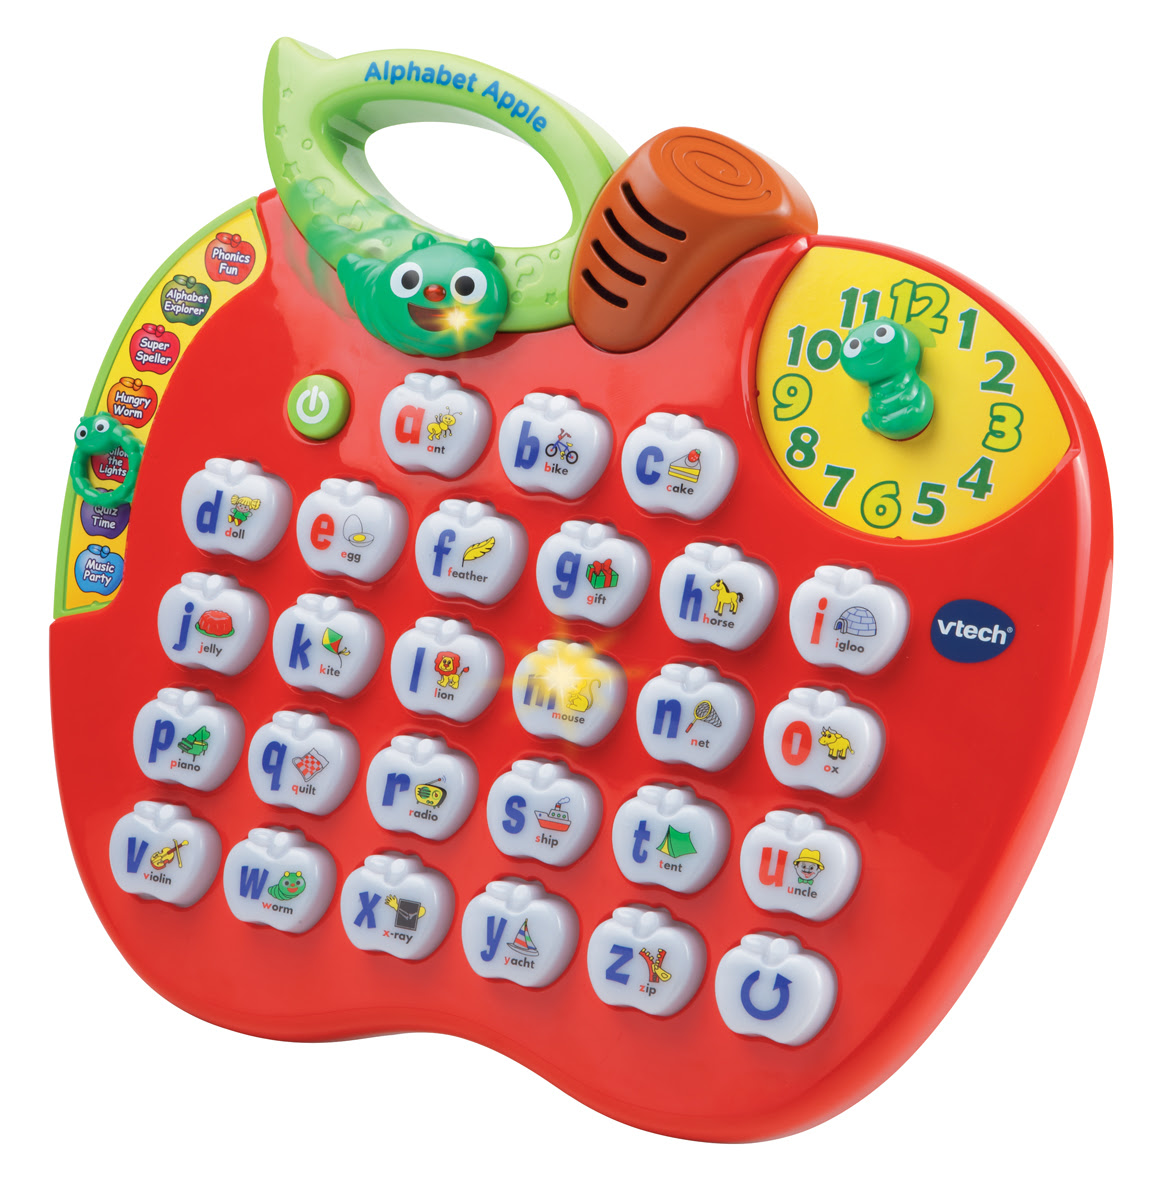 VTECH CHILDRENS EDUCATIONAL INTERACTIVE LIGHT UP ALPHABET APPLE TOY AGE 25 YEAR  eBay